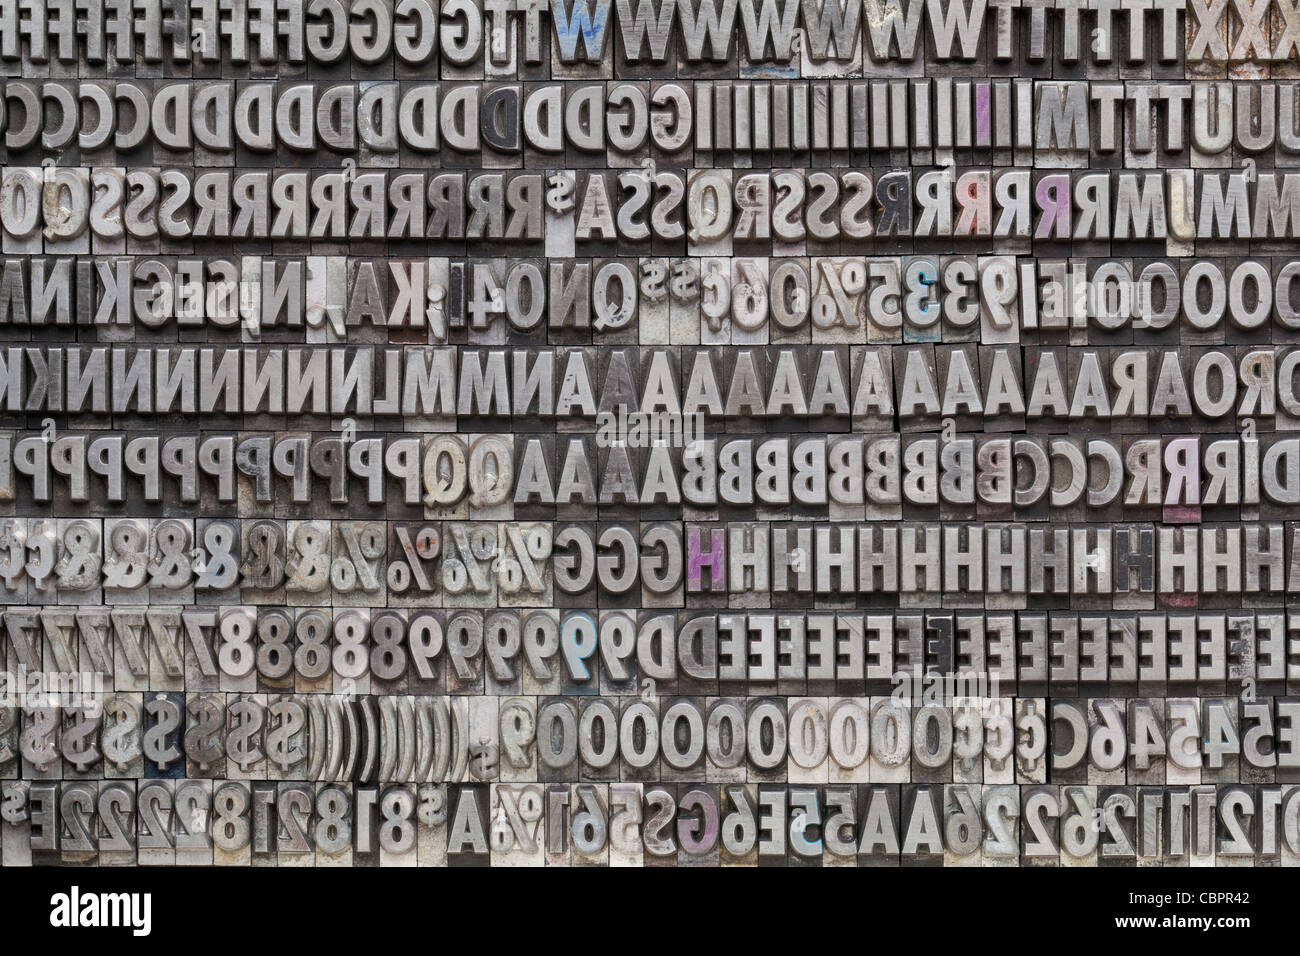 Background of letters numbers and punctuation symbols in old background of letters numbers and punctuation symbols in old grunge metal movable typeset biocorpaavc